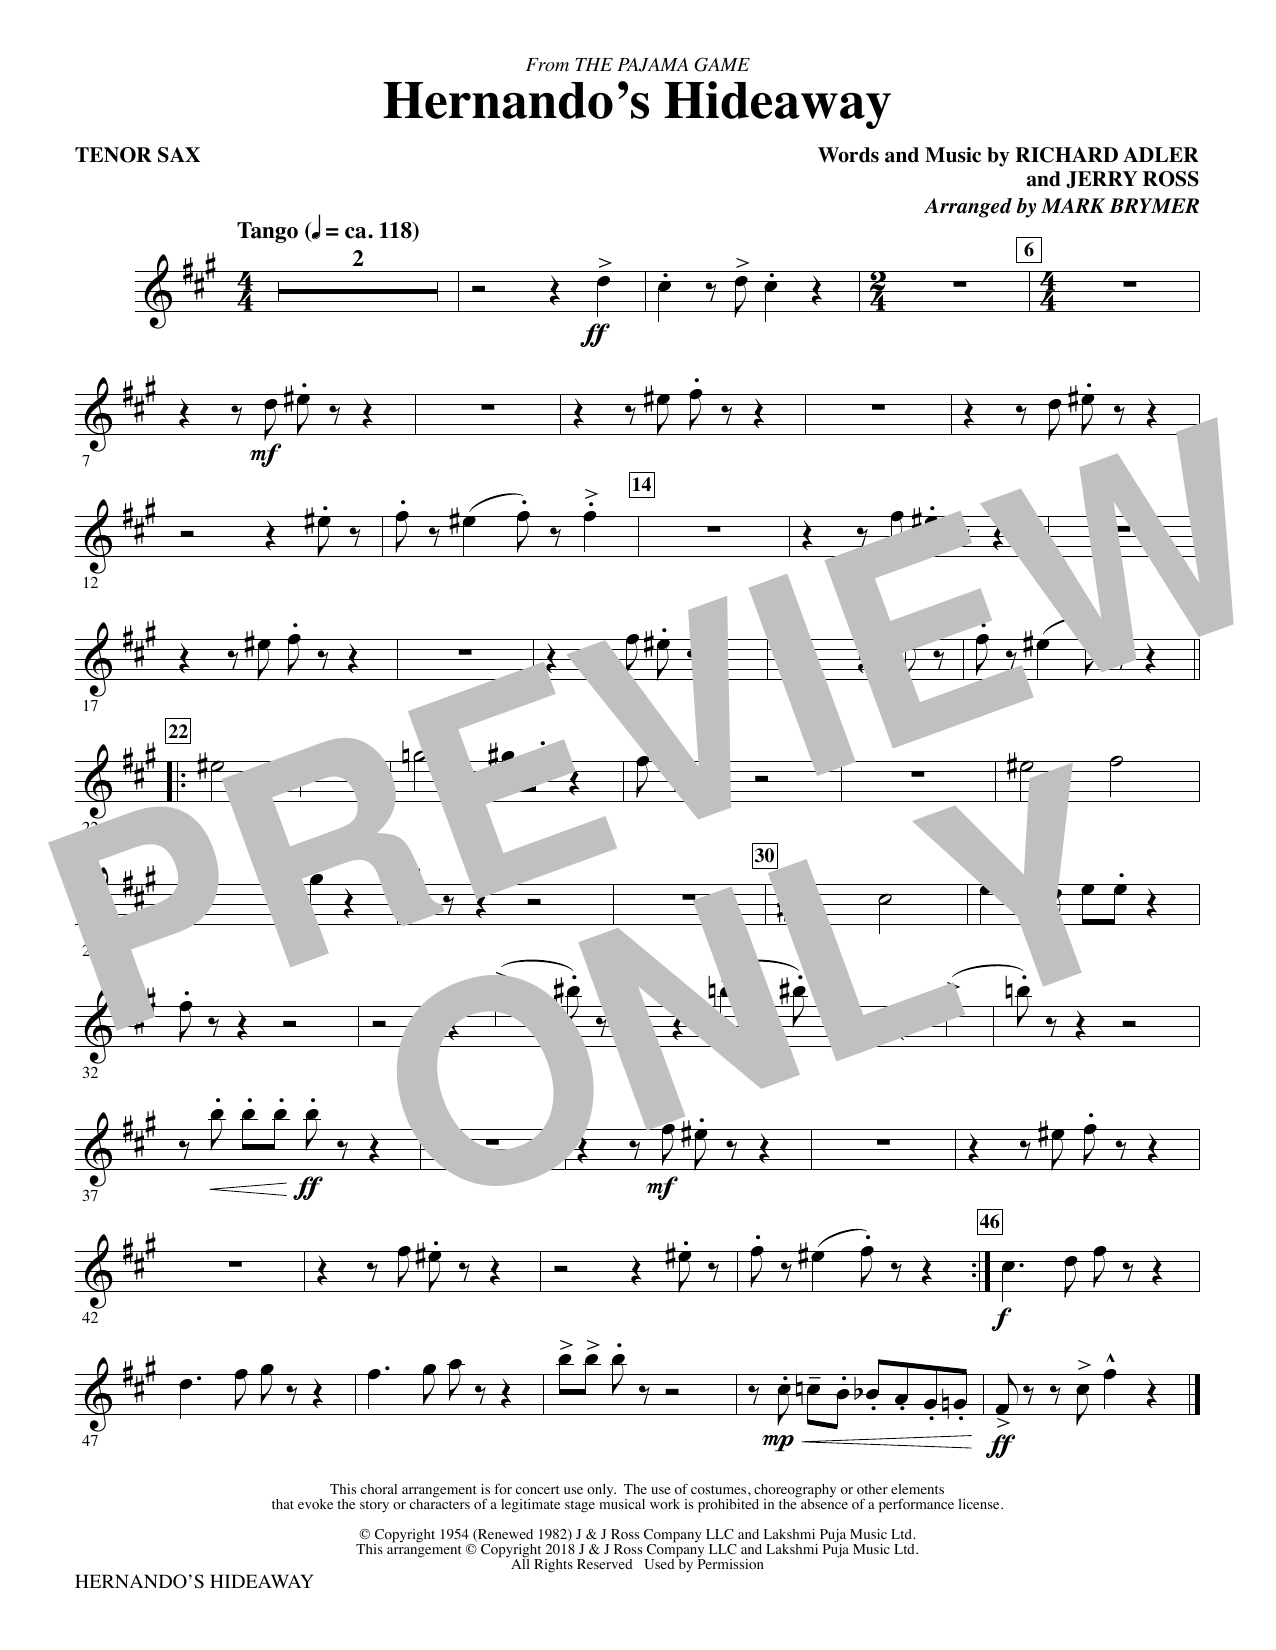 Mark Brymer Hernando's Hideaway - Tenor Sax sheet music notes and chords. Download Printable PDF.